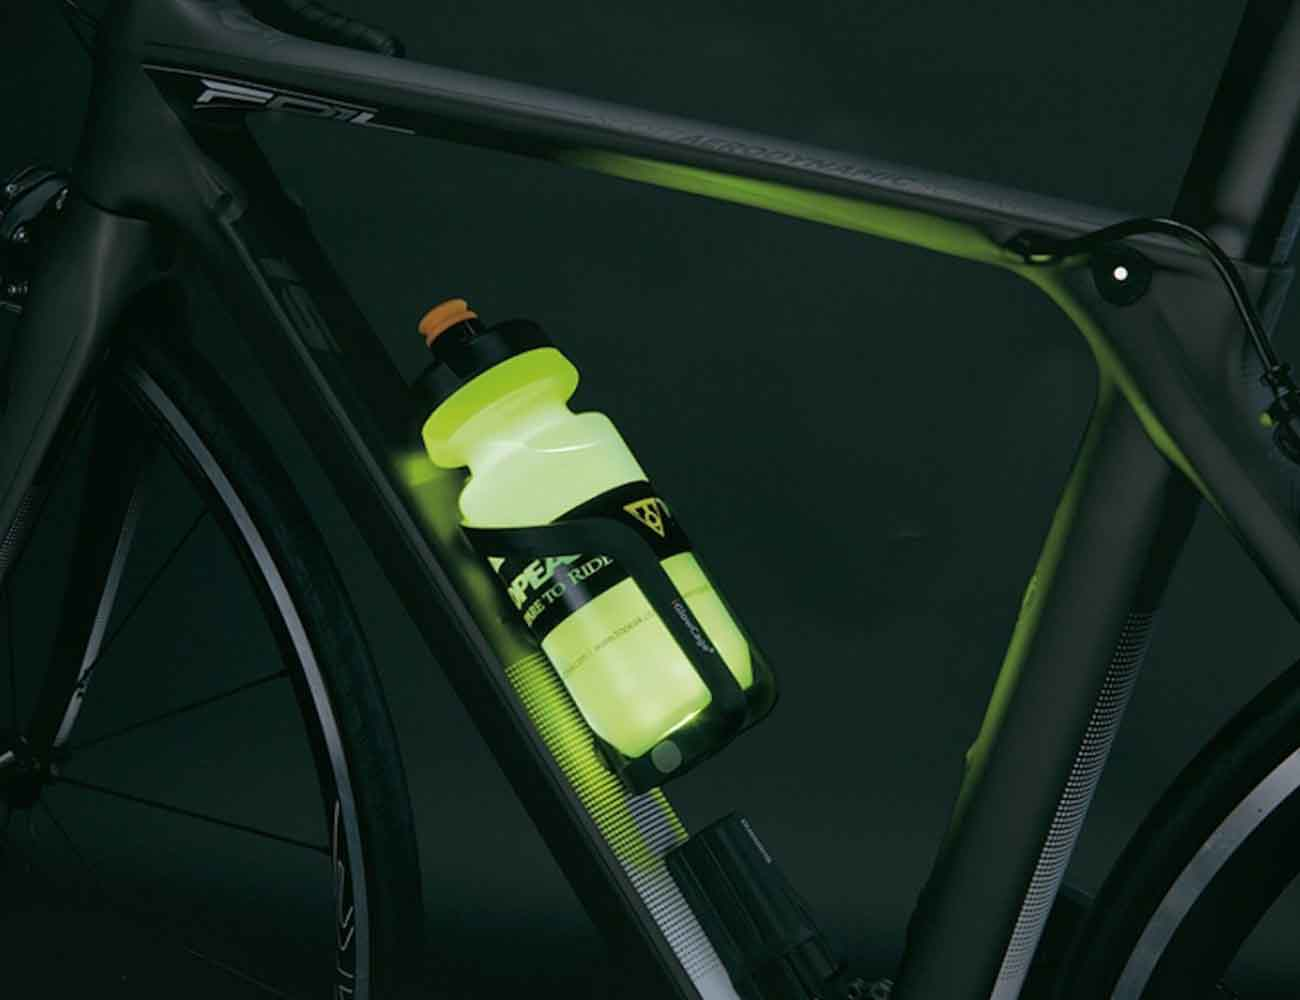 IGlowCageB+%26%238211%3B+Water+Bottle+And+Cage+With+LED+Light+By+Topeak